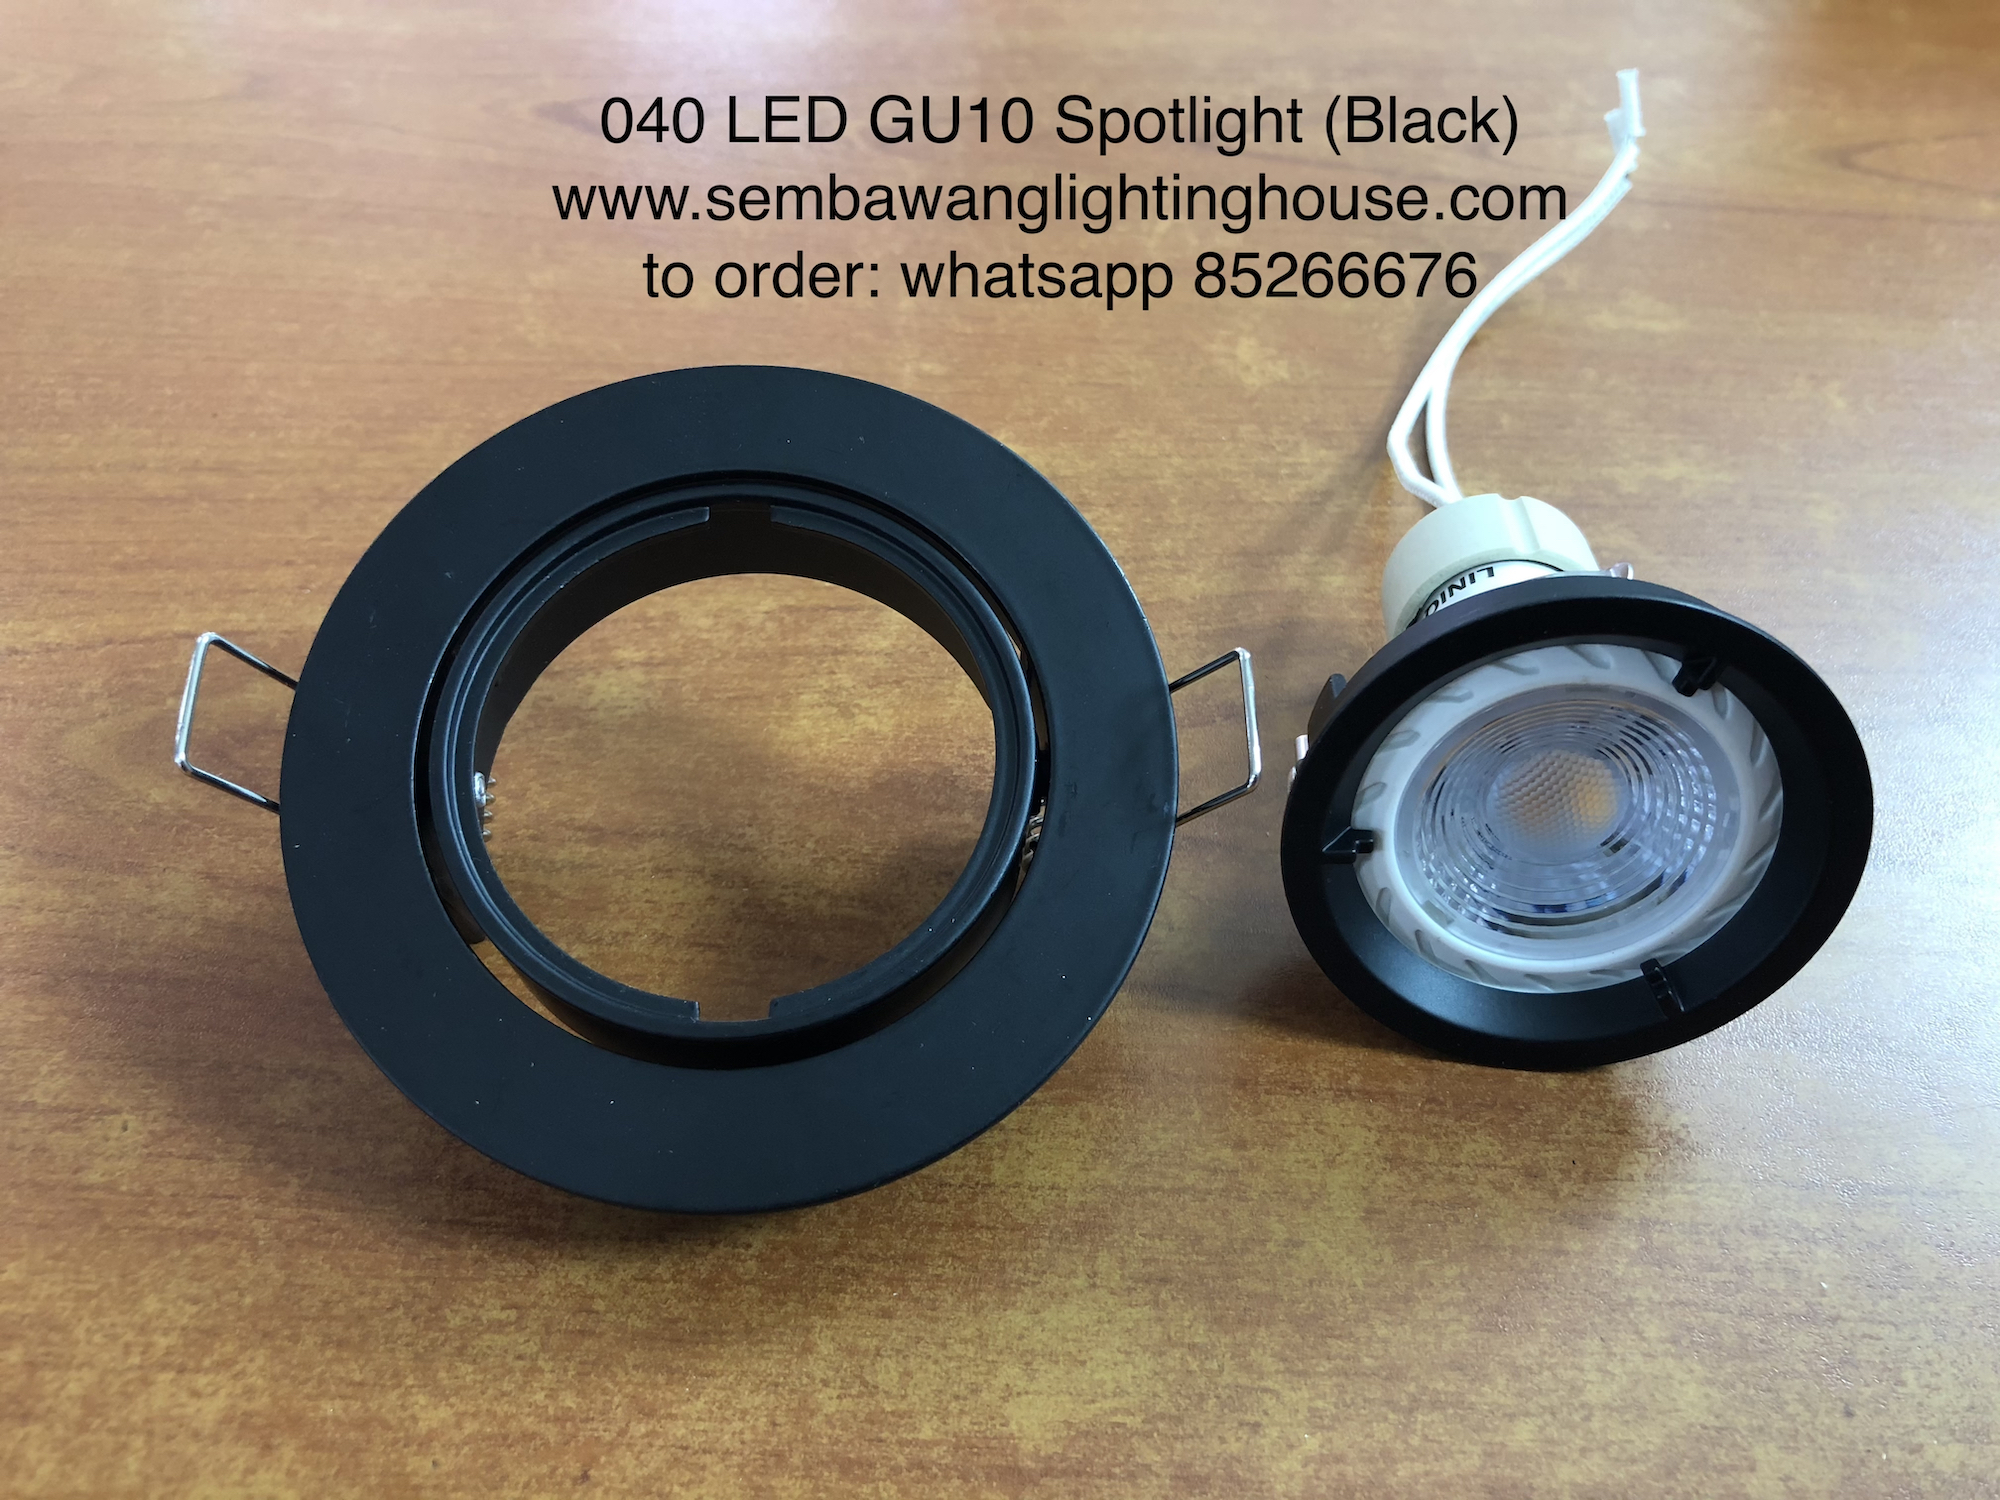 040-bk-led-spotlight-gu10-d.jpg